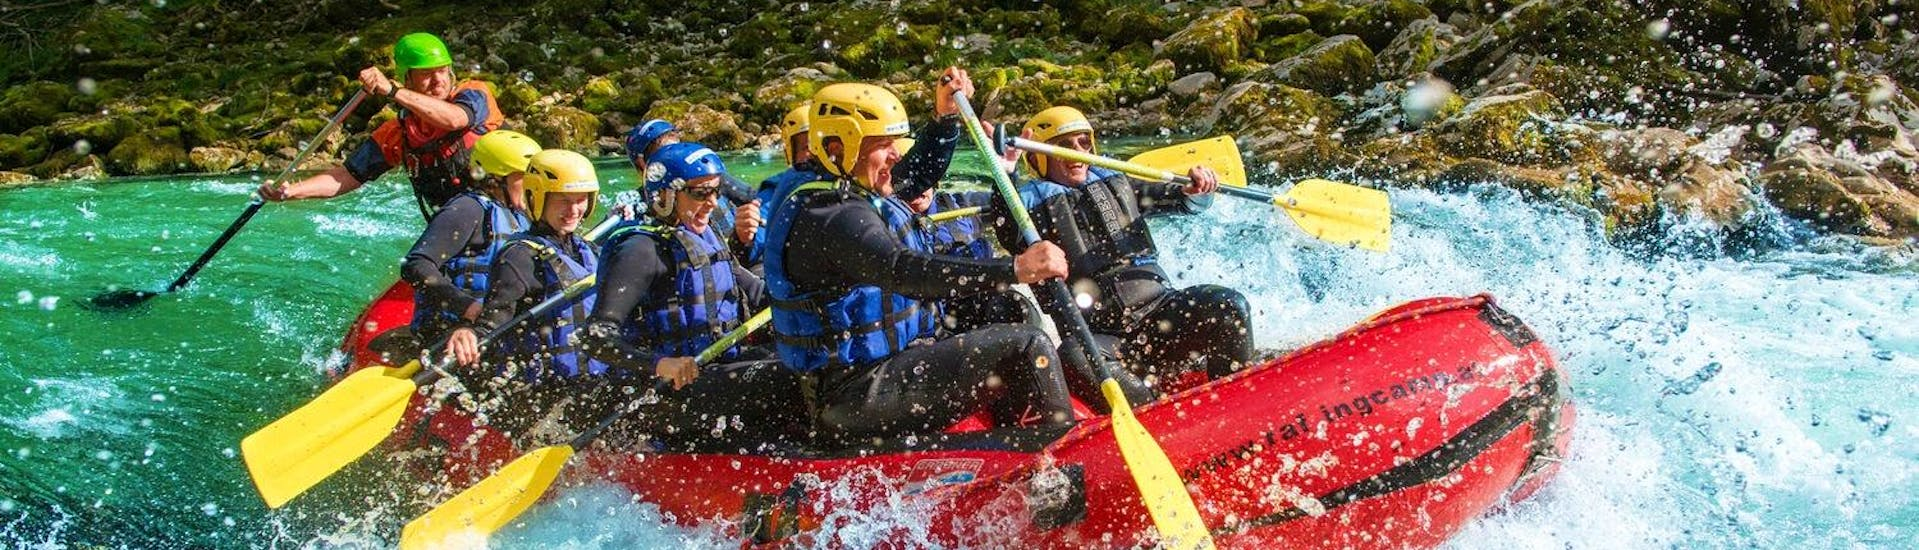 Rafting on the Salza - Extended Tour